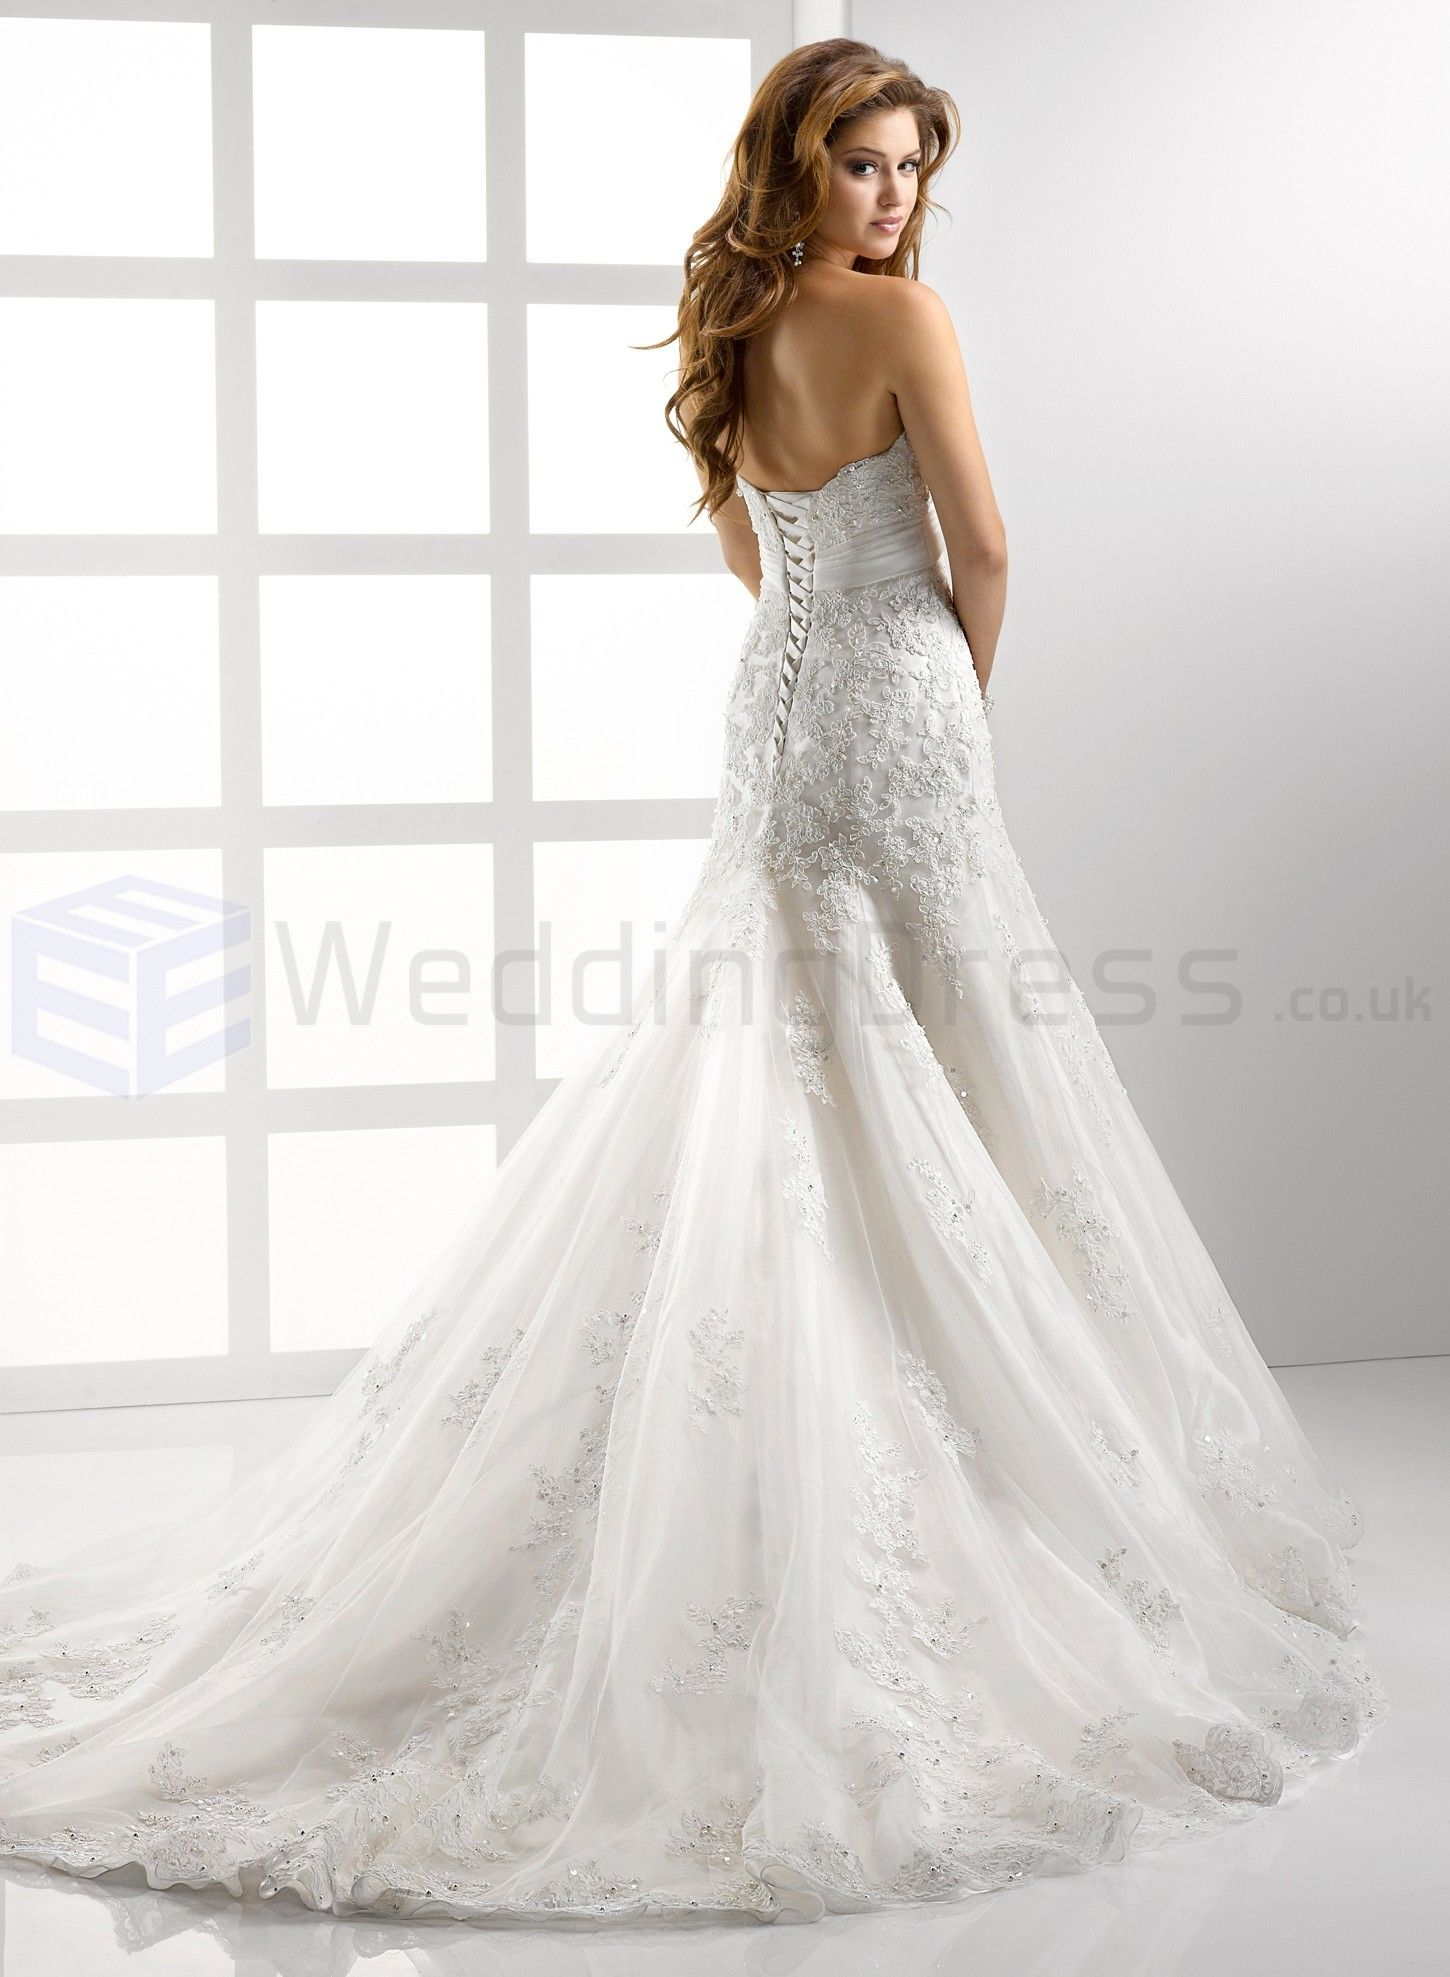 a2b91ee7f98 Embellished Lace And Tulle Soft Sweetheart Neckline Fit and Flare A-line  Wedding Dress